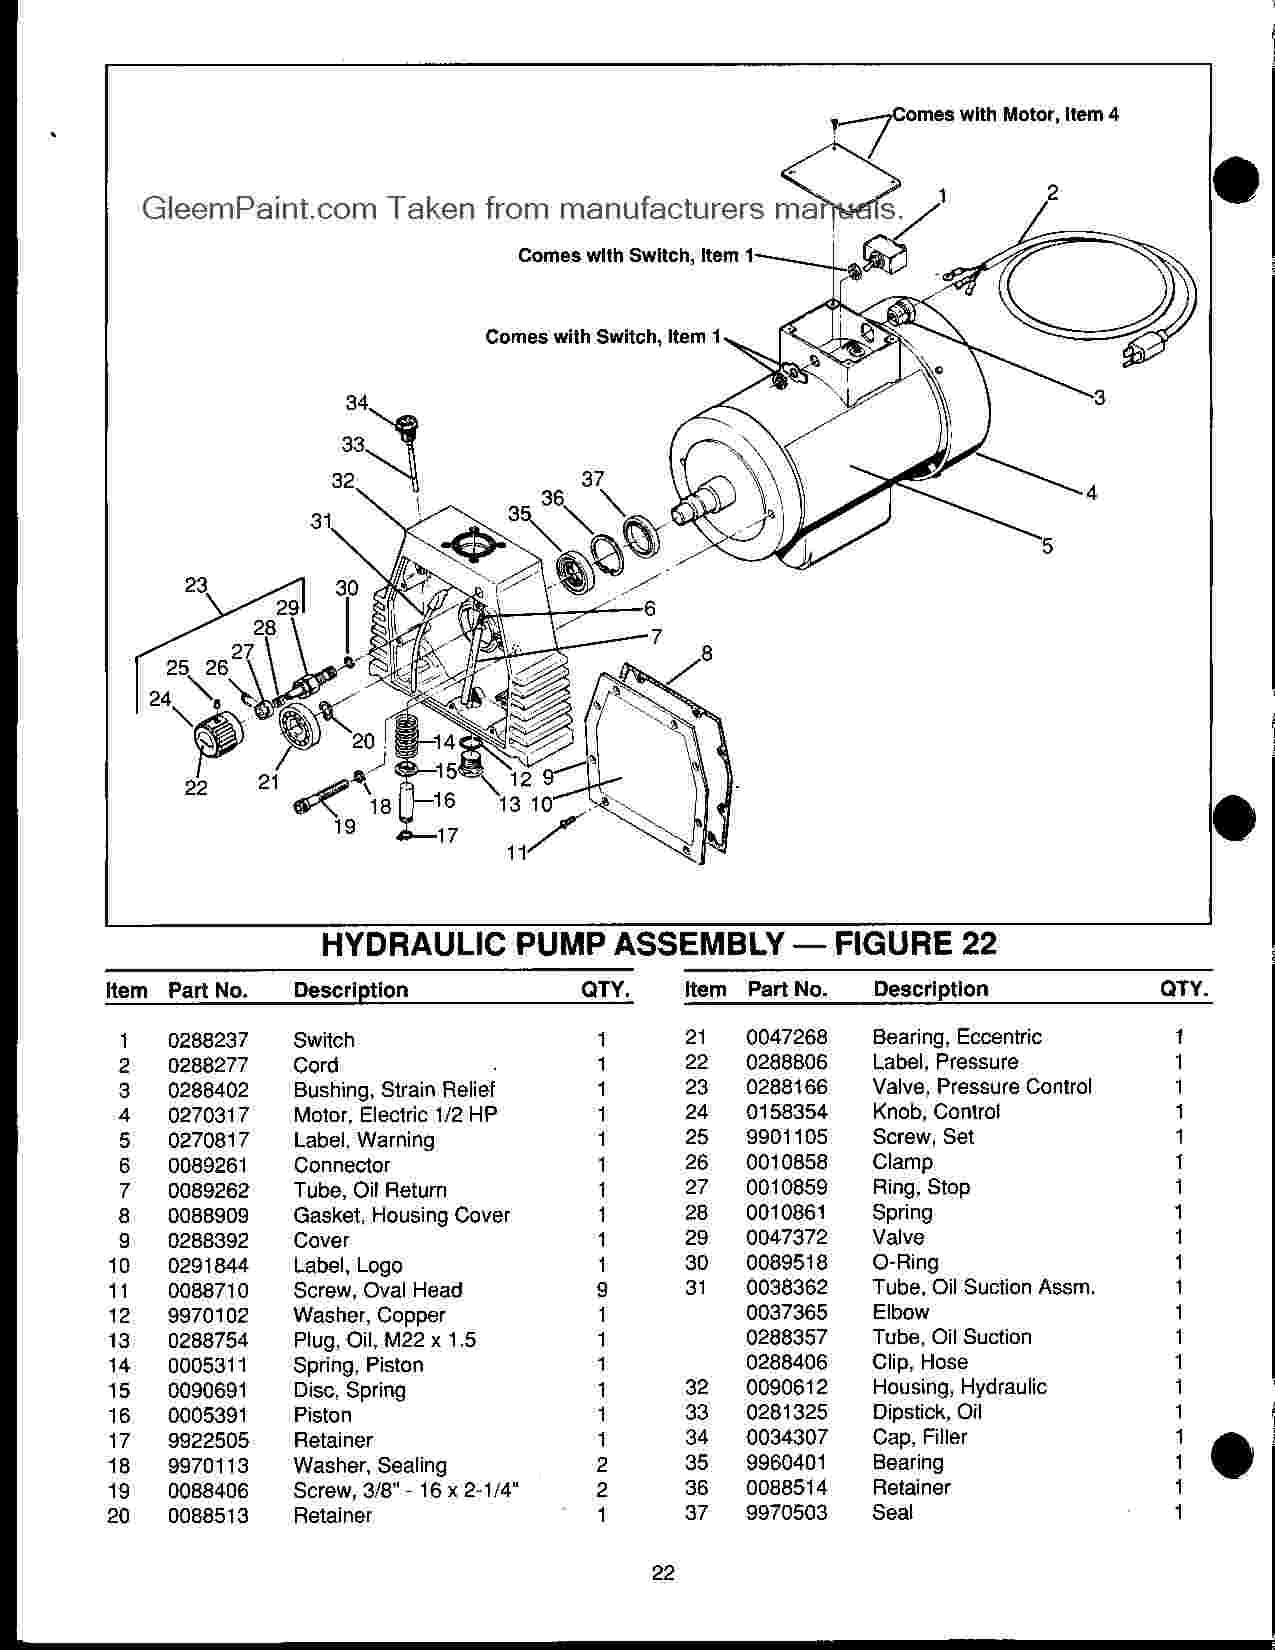 1250 Hp Manual W Parts Breakdown Wagner And Spraytech